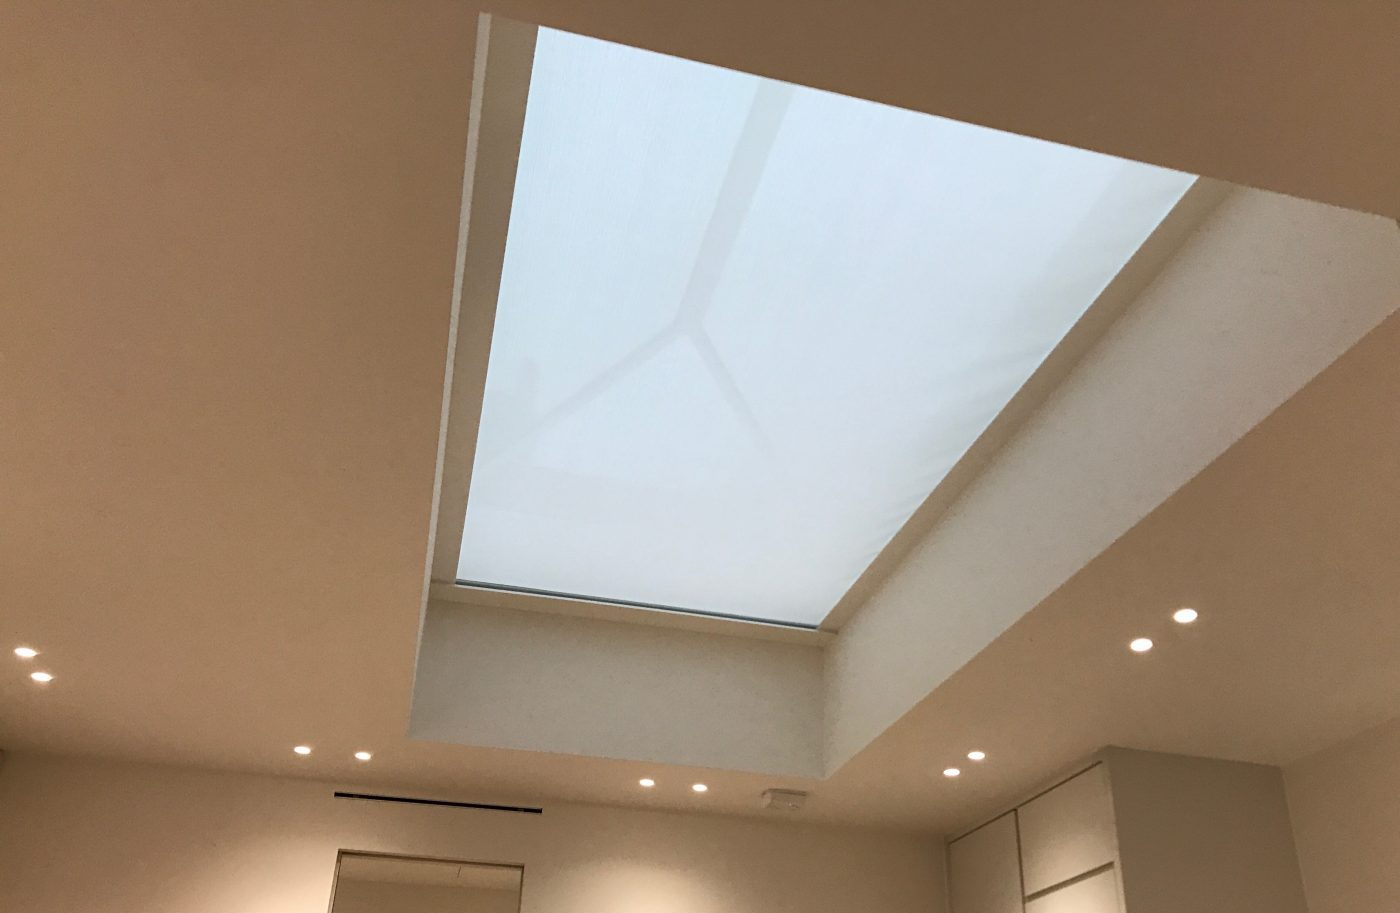 Roof Lantern Electric Blinds Fitted in Marylebone, London - Closed - The Electric Blind Company